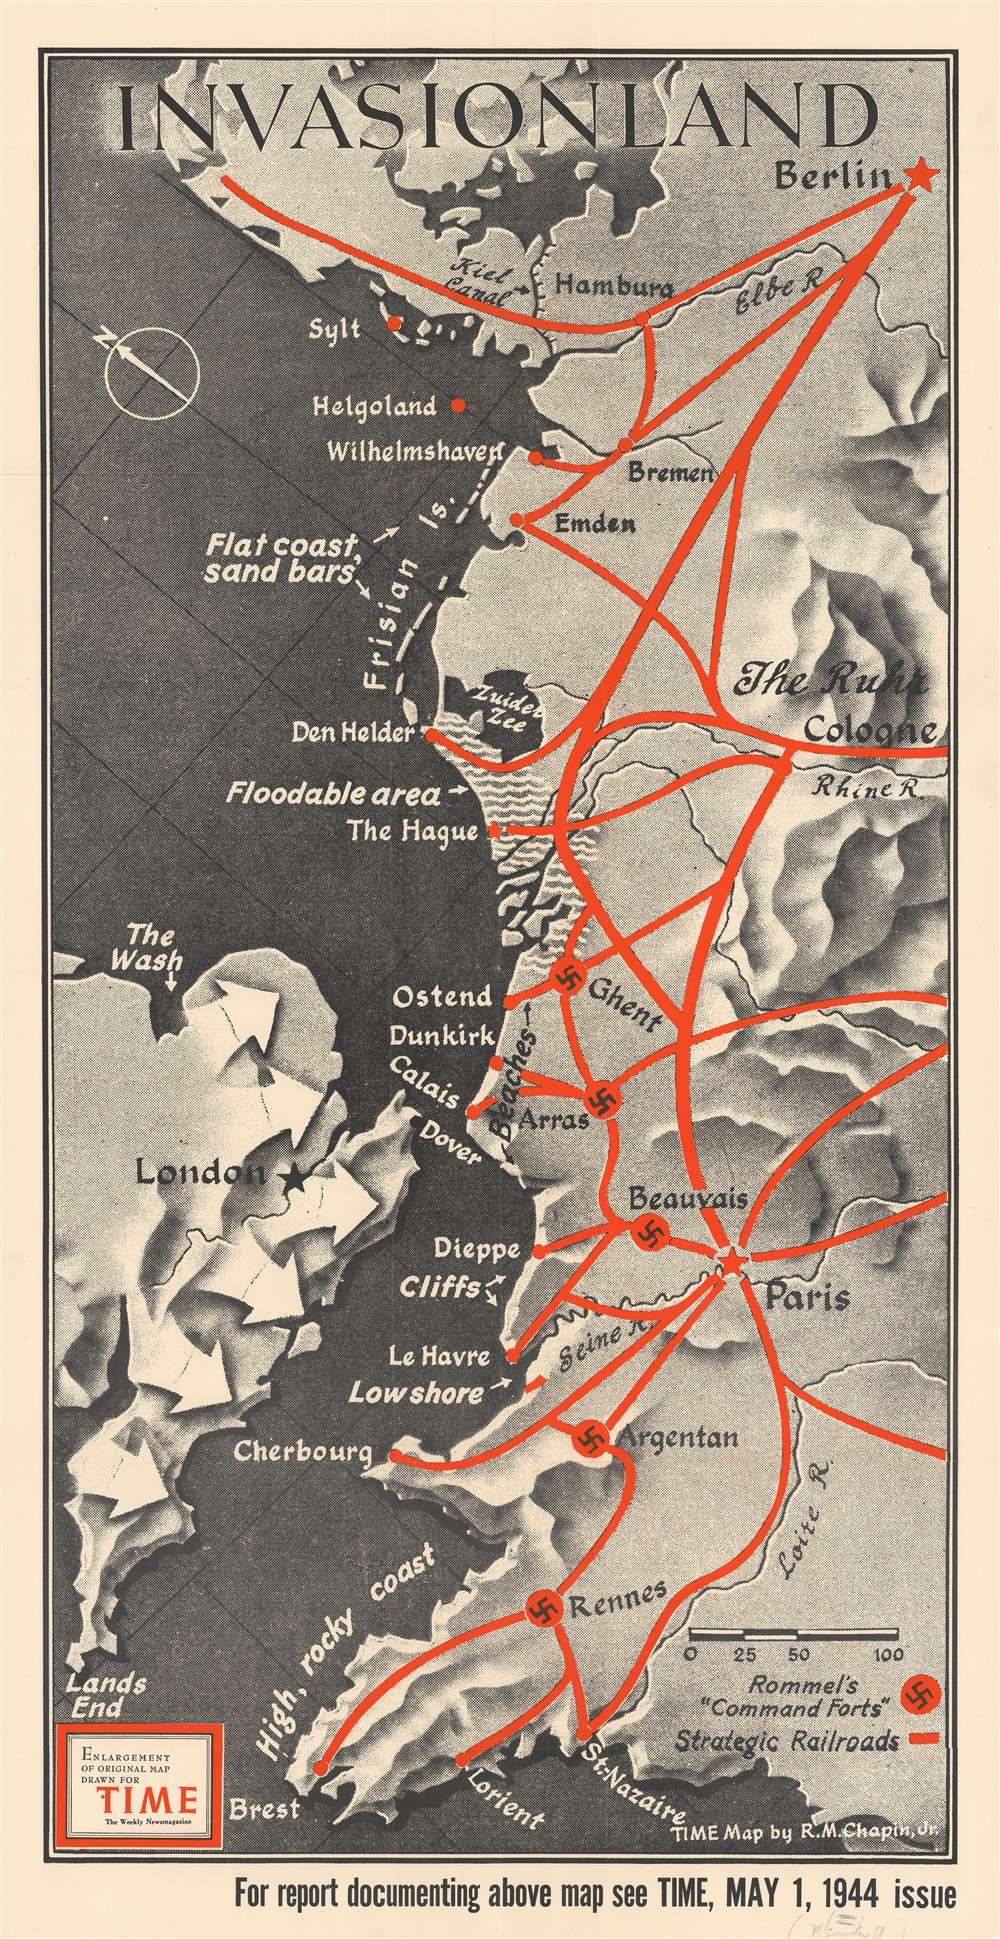 1944 Chapin Map of the Presumed Allied Invasion of 'Fortress Europe'